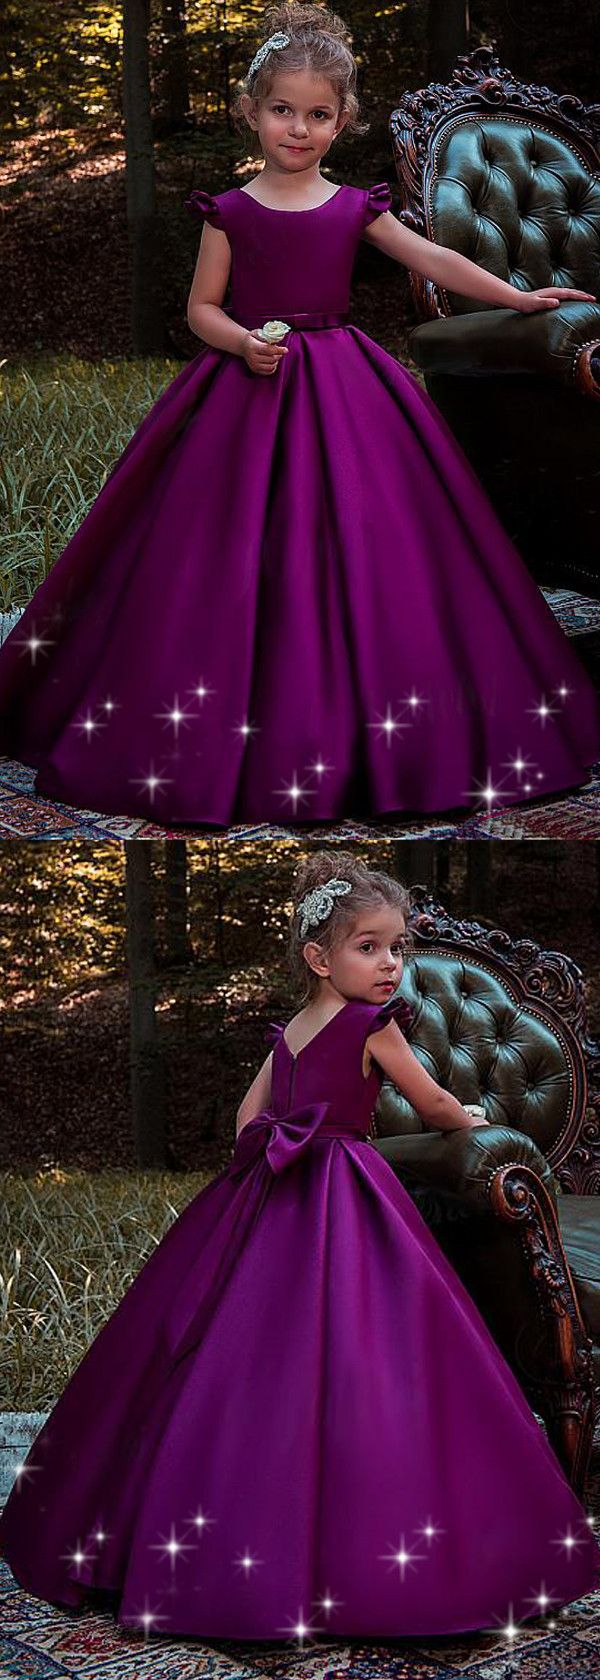 Sweet Satin Scoop Neckline Cap Sleeves Floor-length Ball Gown Flower Girl Dresses With Belt & Bowknot